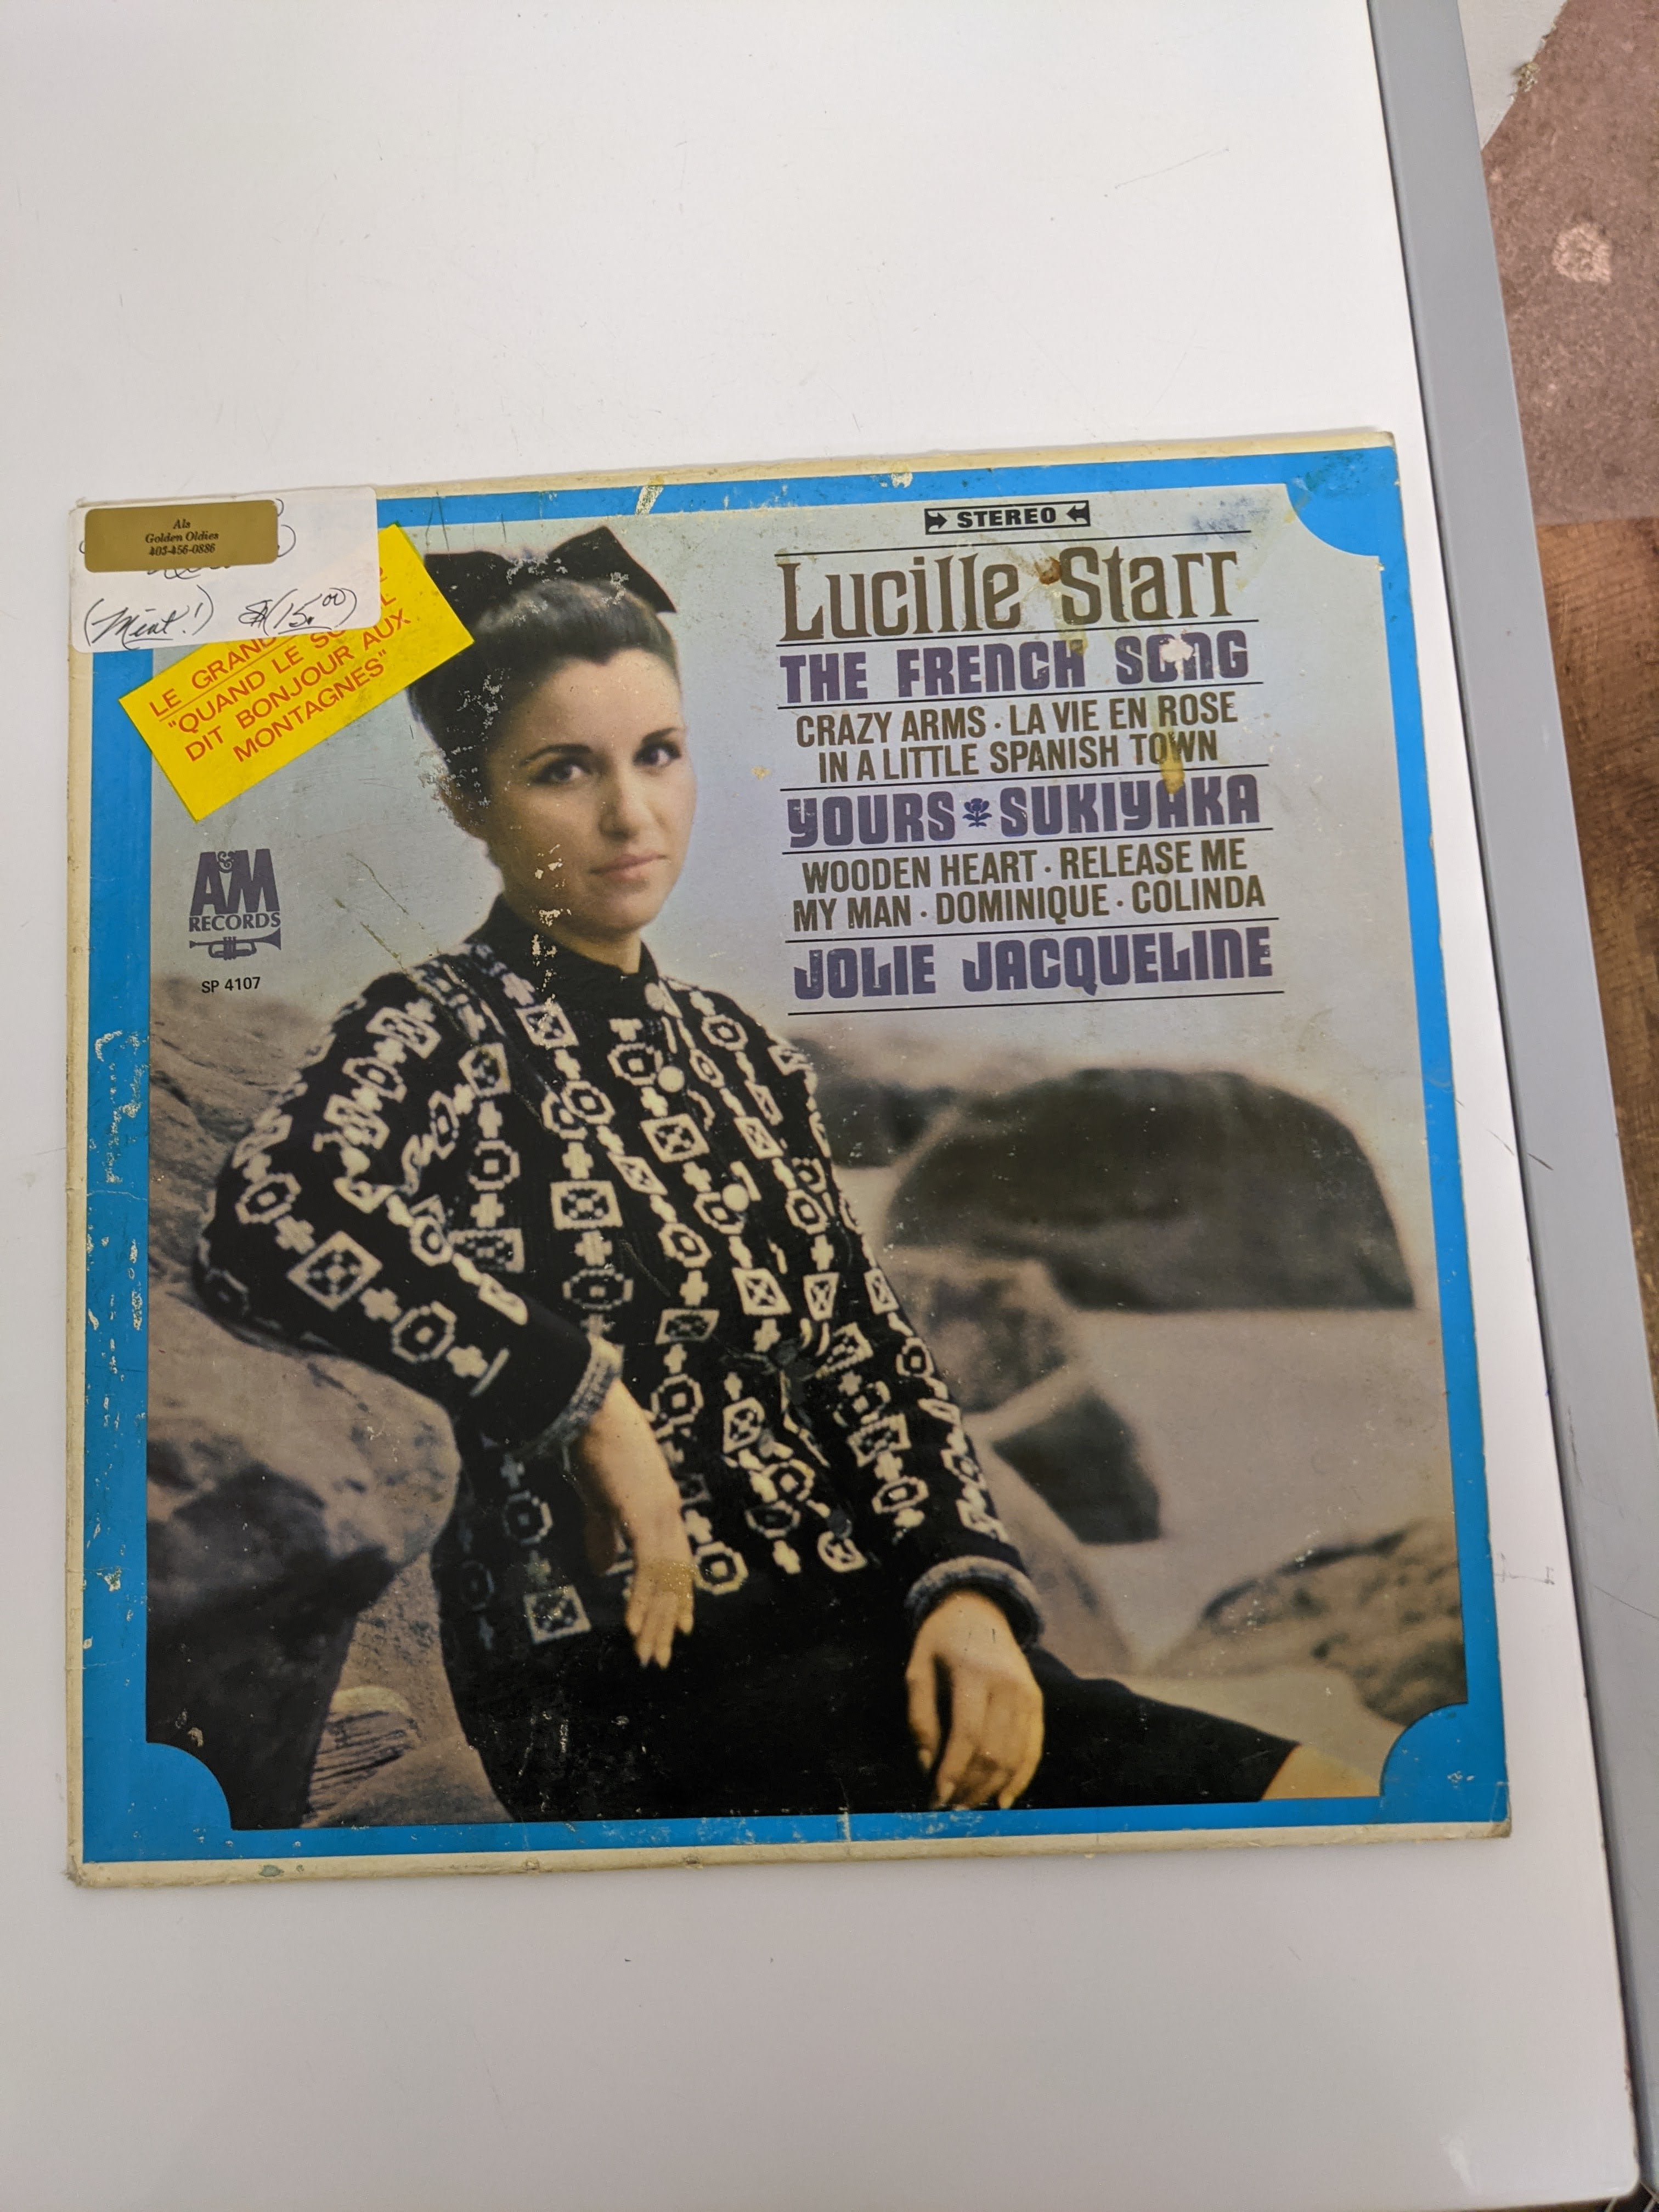 Lucille Star - The French Song Vinyl